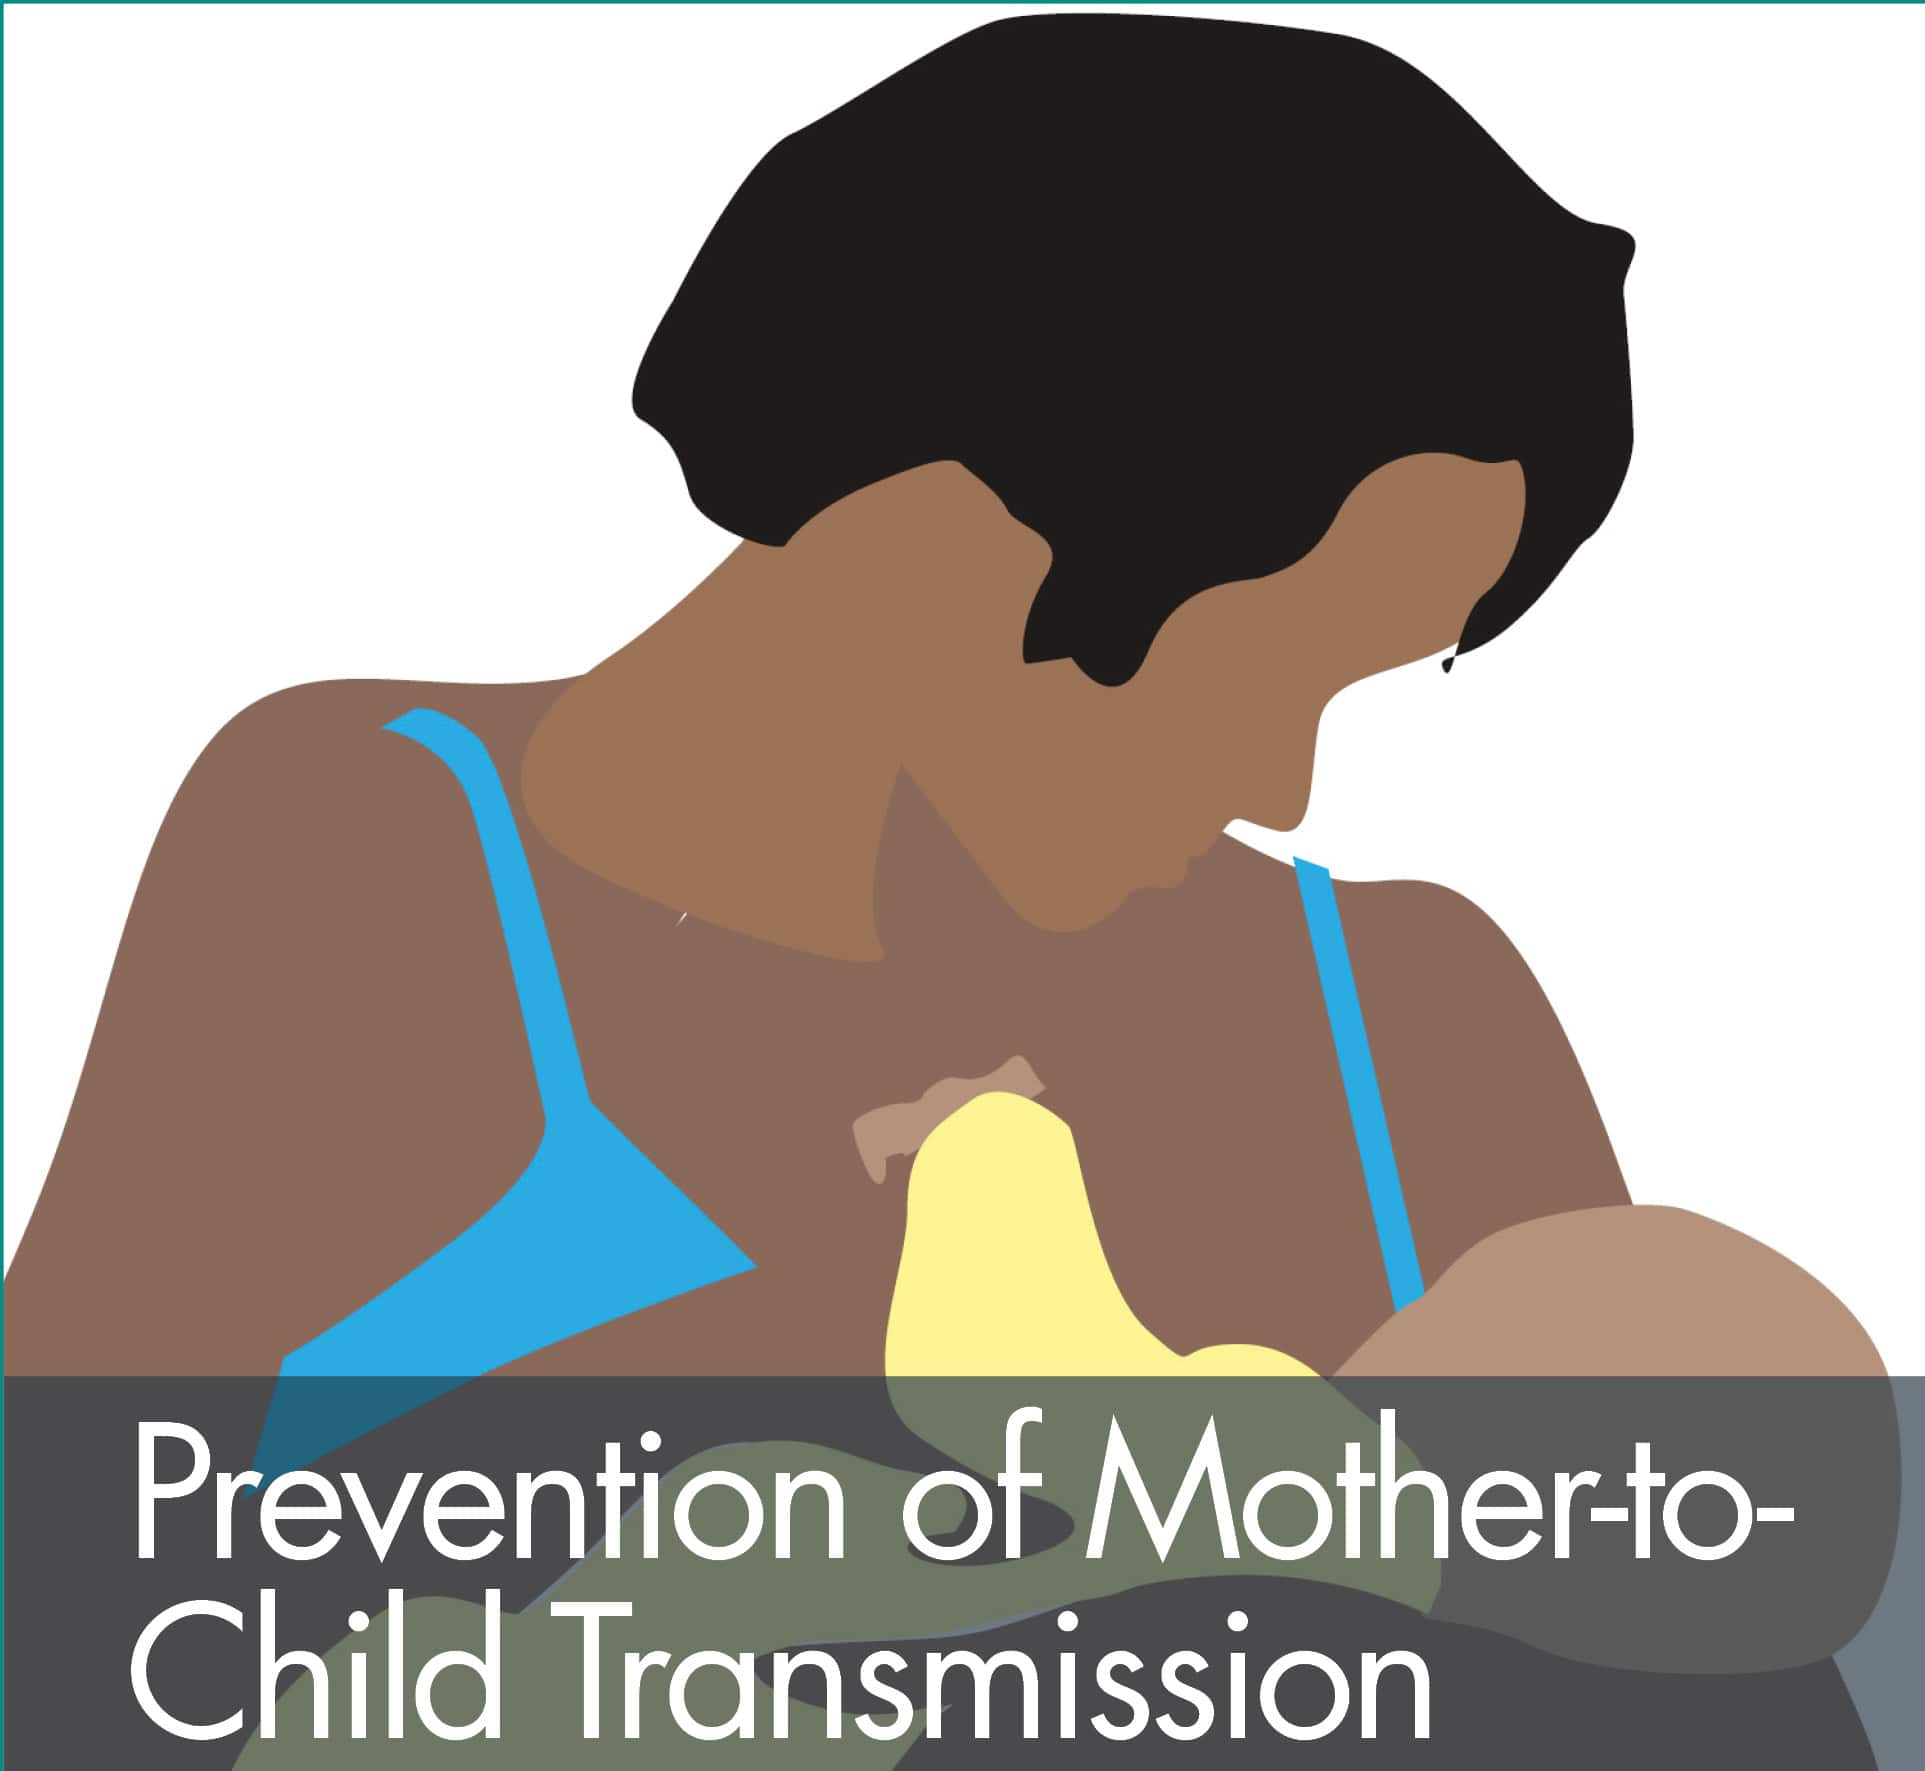 Prevention of Mother-to-Child Transmission